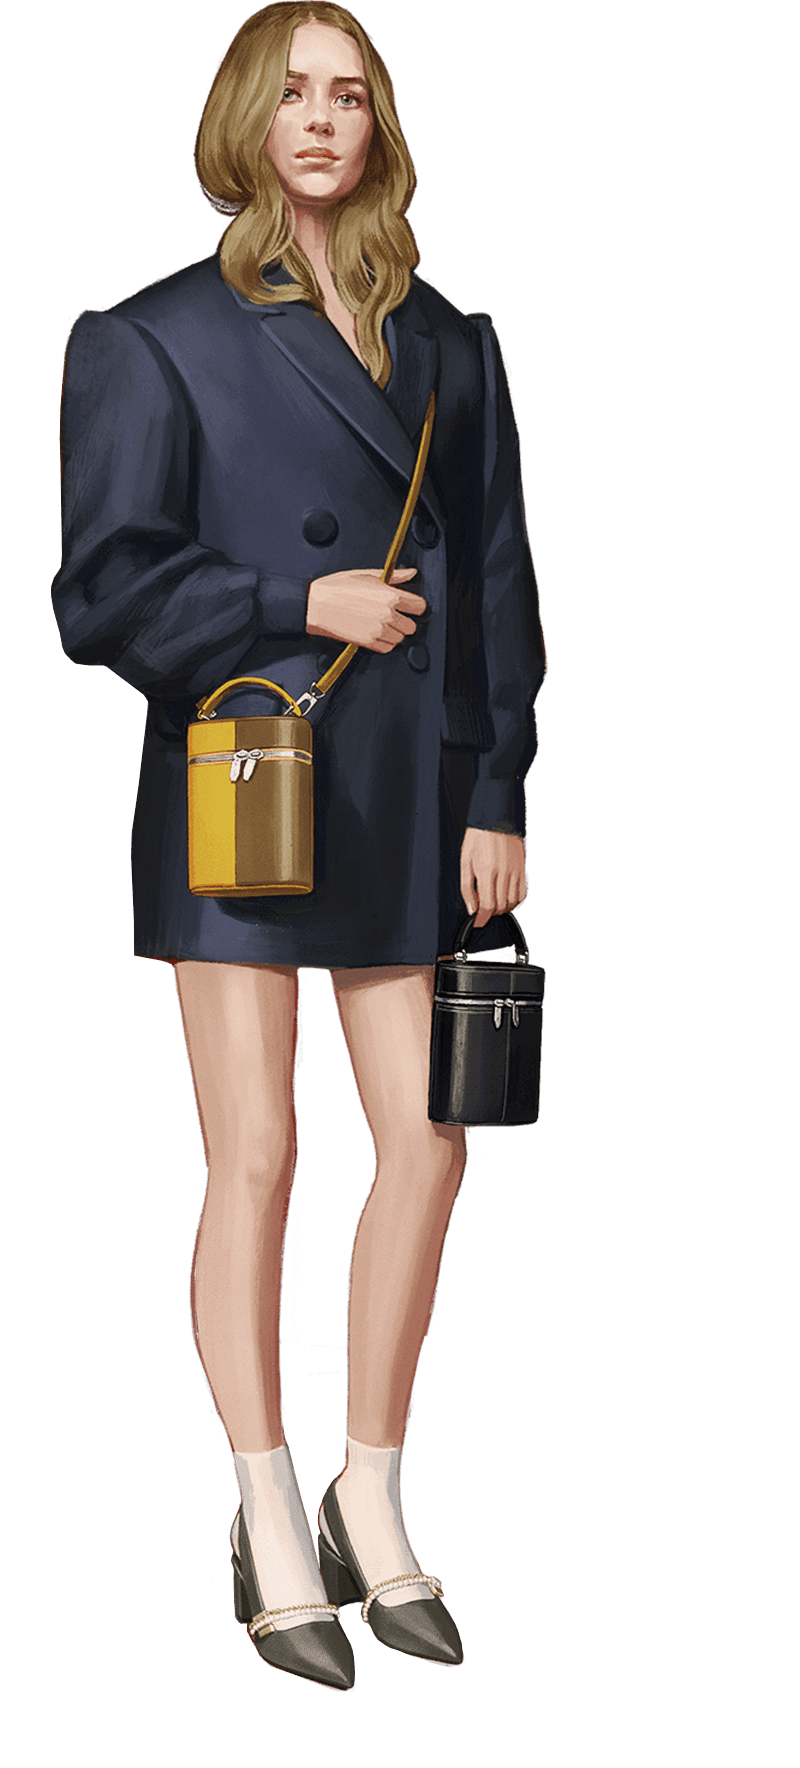 A compilation of illustrations from the CHARLES & KEITH Autumn Winter 2020 campaign - CHARLES & KEITH - Web - Model 2